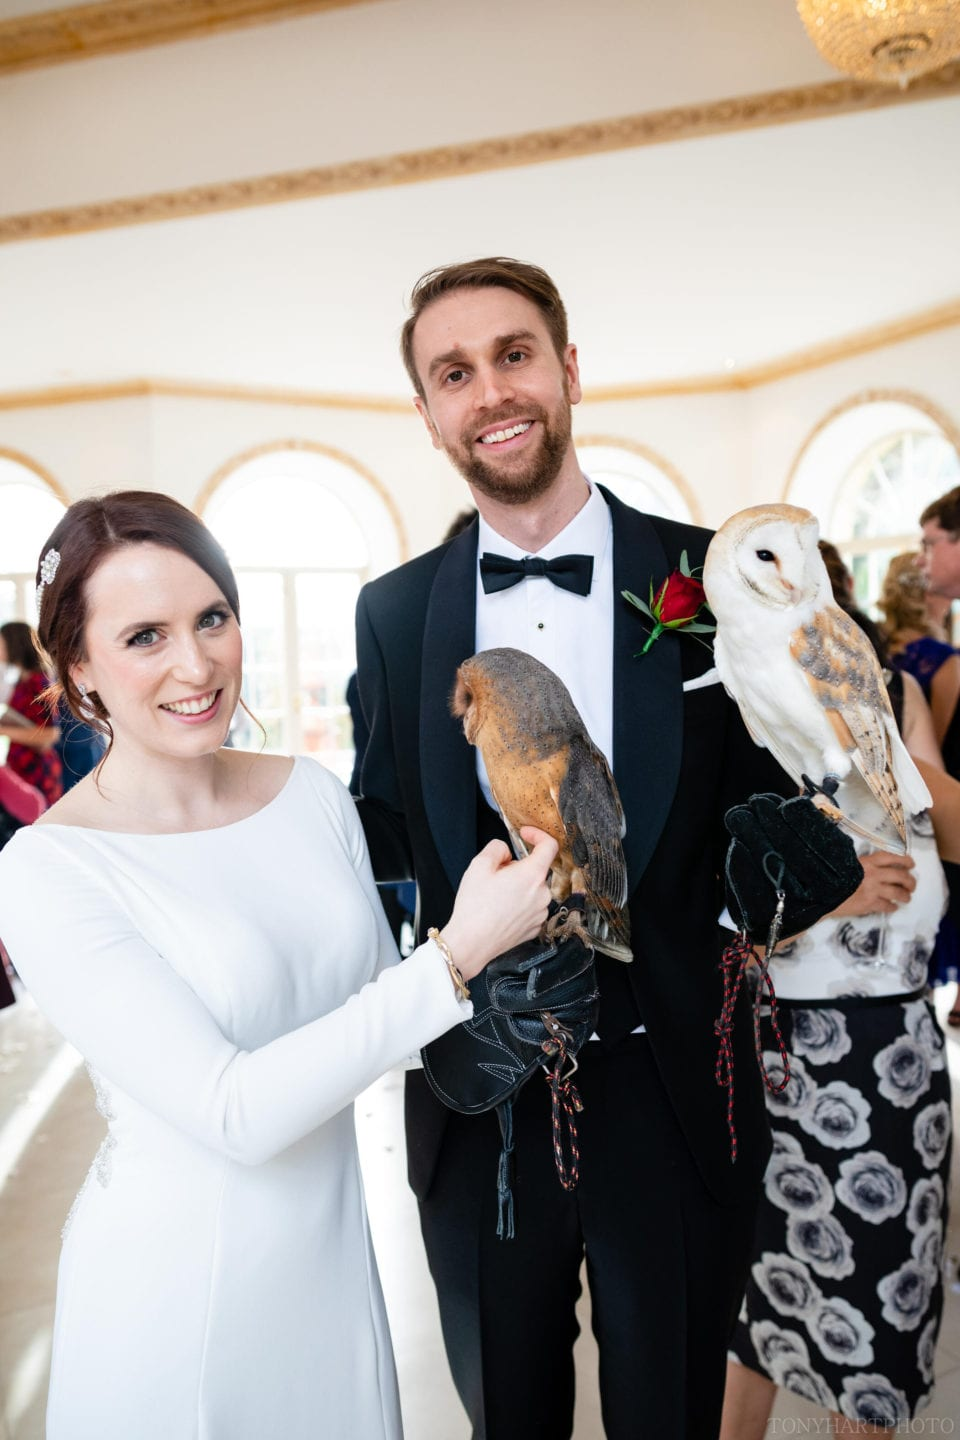 Northbrook Park Wedding Photography - Bride & Groom with Owls by CSR Falconry